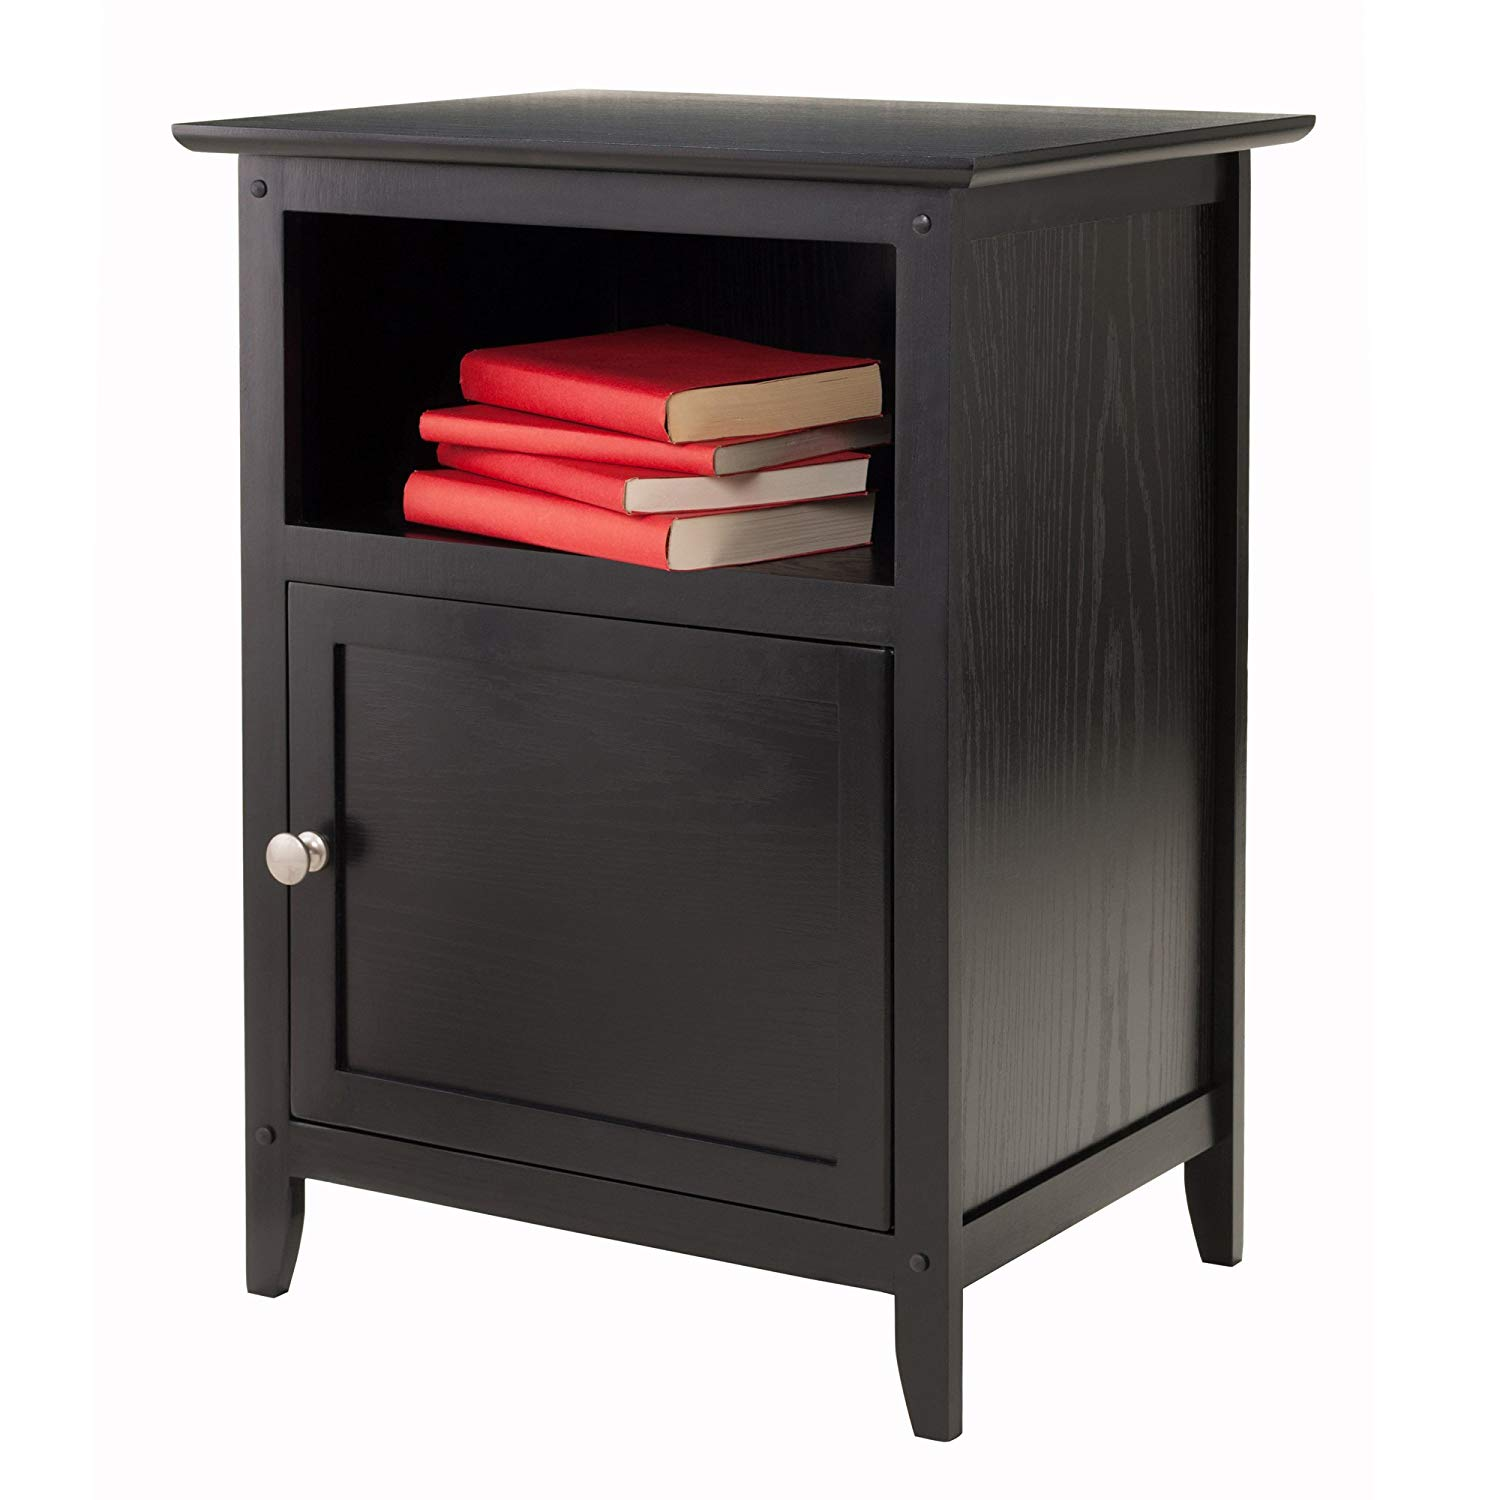 winsome wood henry accent table black kitchen agl with power dining grey metal coffee glass nesting tables outdoor side bunnings piece setting inexpensive lamps ikea kids storage